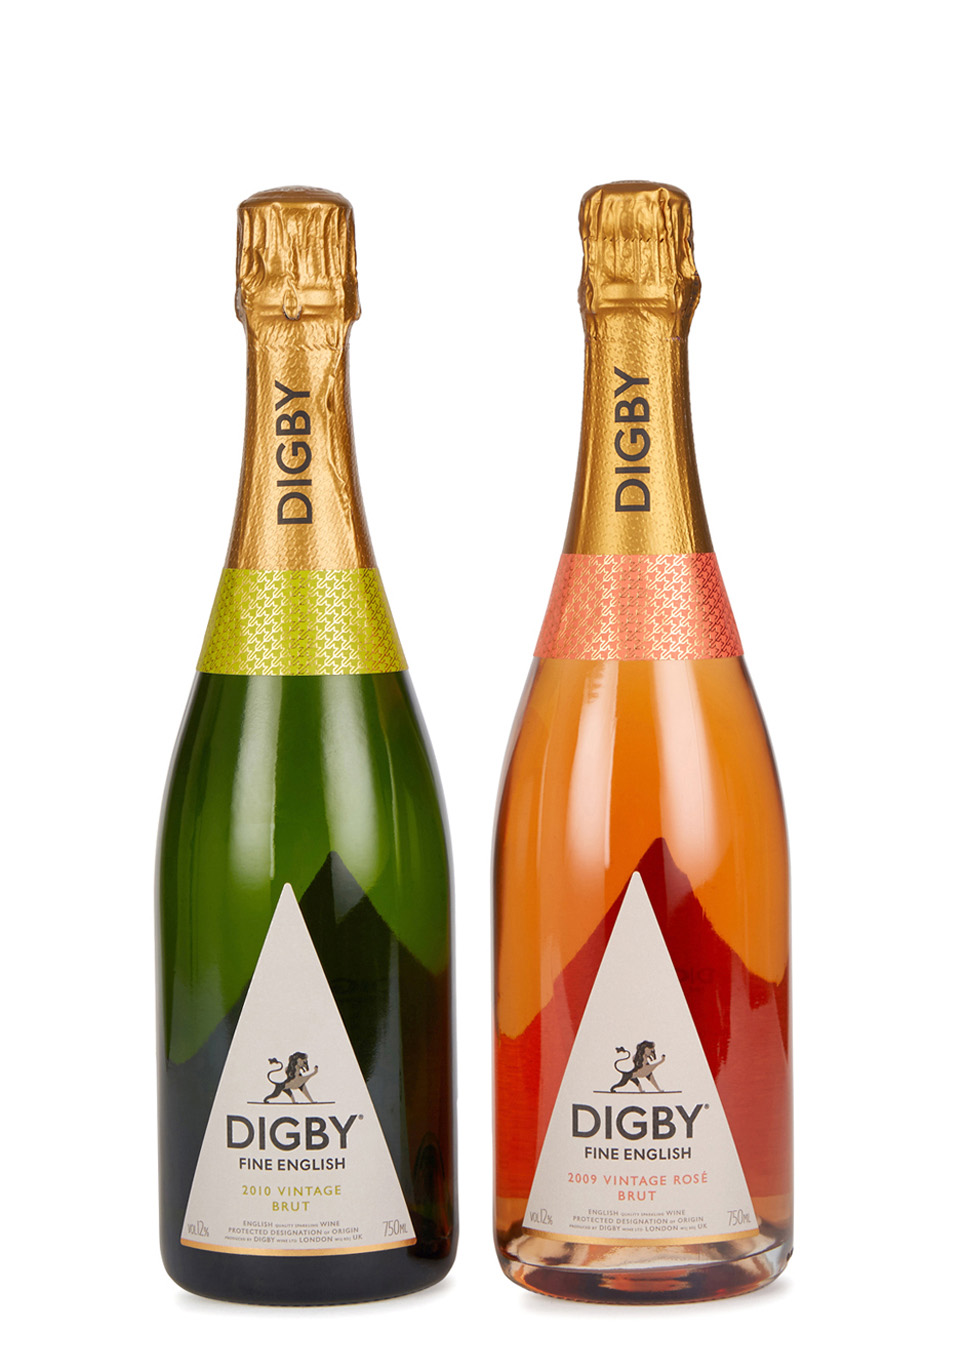 English Vintage Sparkling Wine Duo - Digby